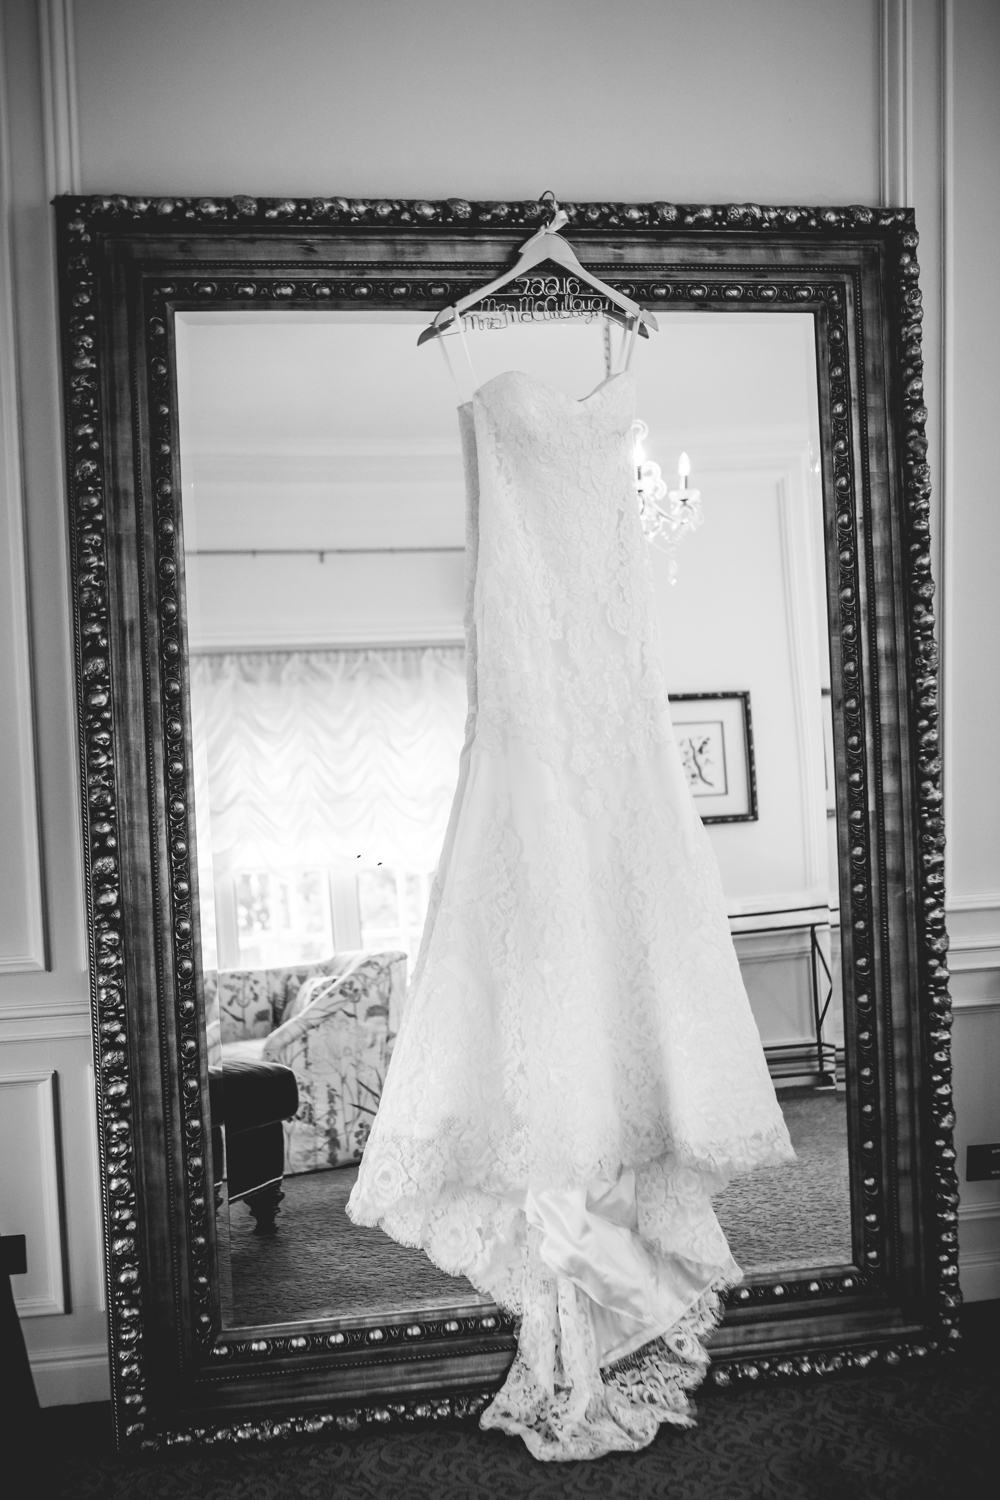 Wedding dress hanging on mirror. Photographed by JMGant Photography, Denver Colorado wedding photographer.